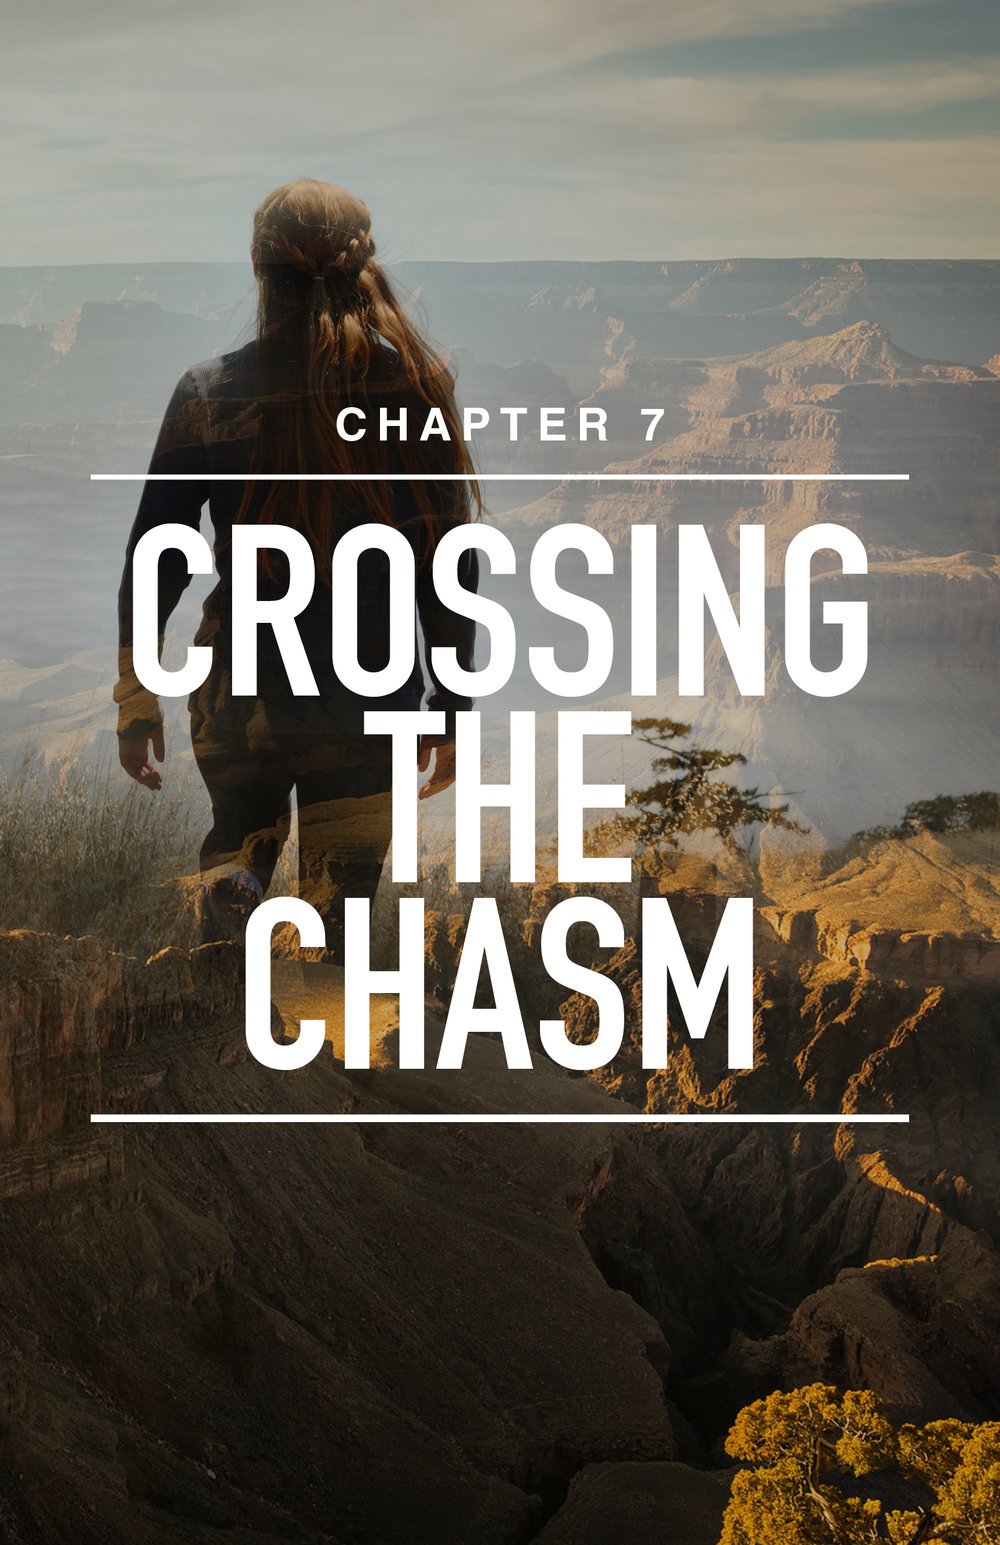 CH 7: Crossing The Chasm